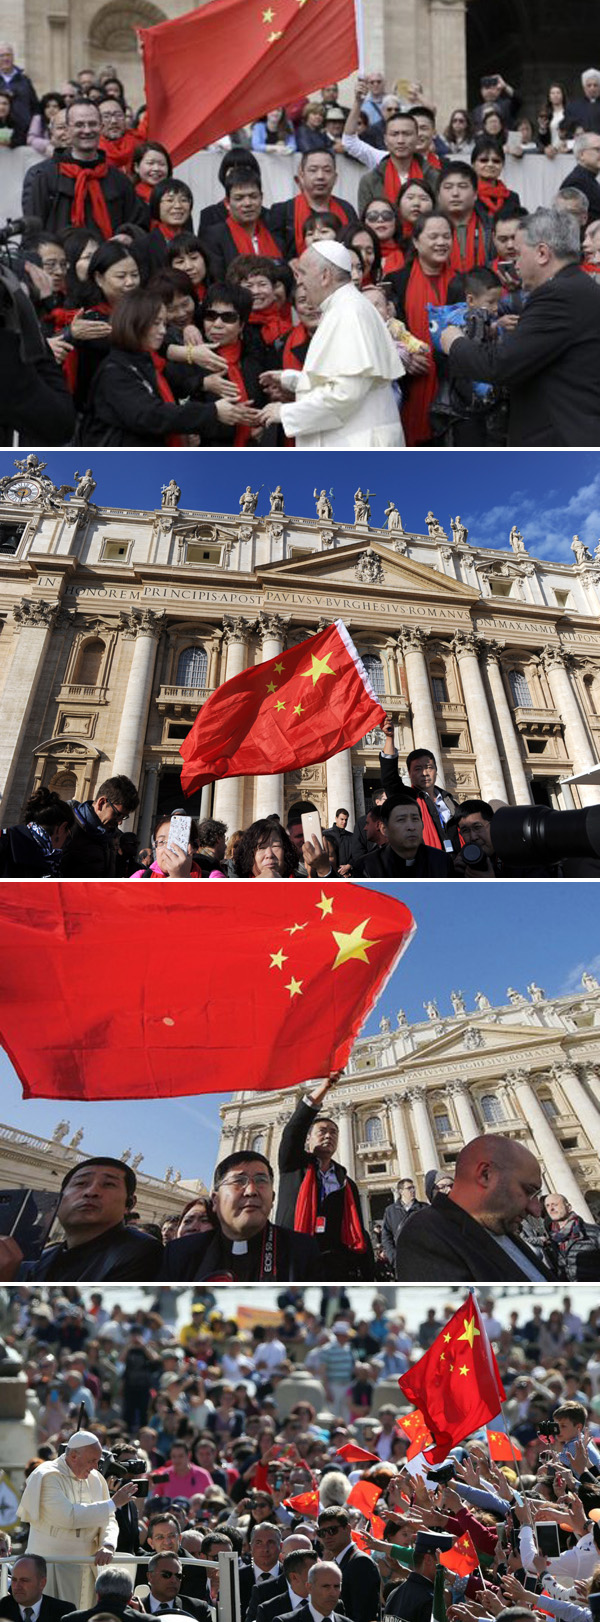 Chinese Communist Flag at the Vatican 2